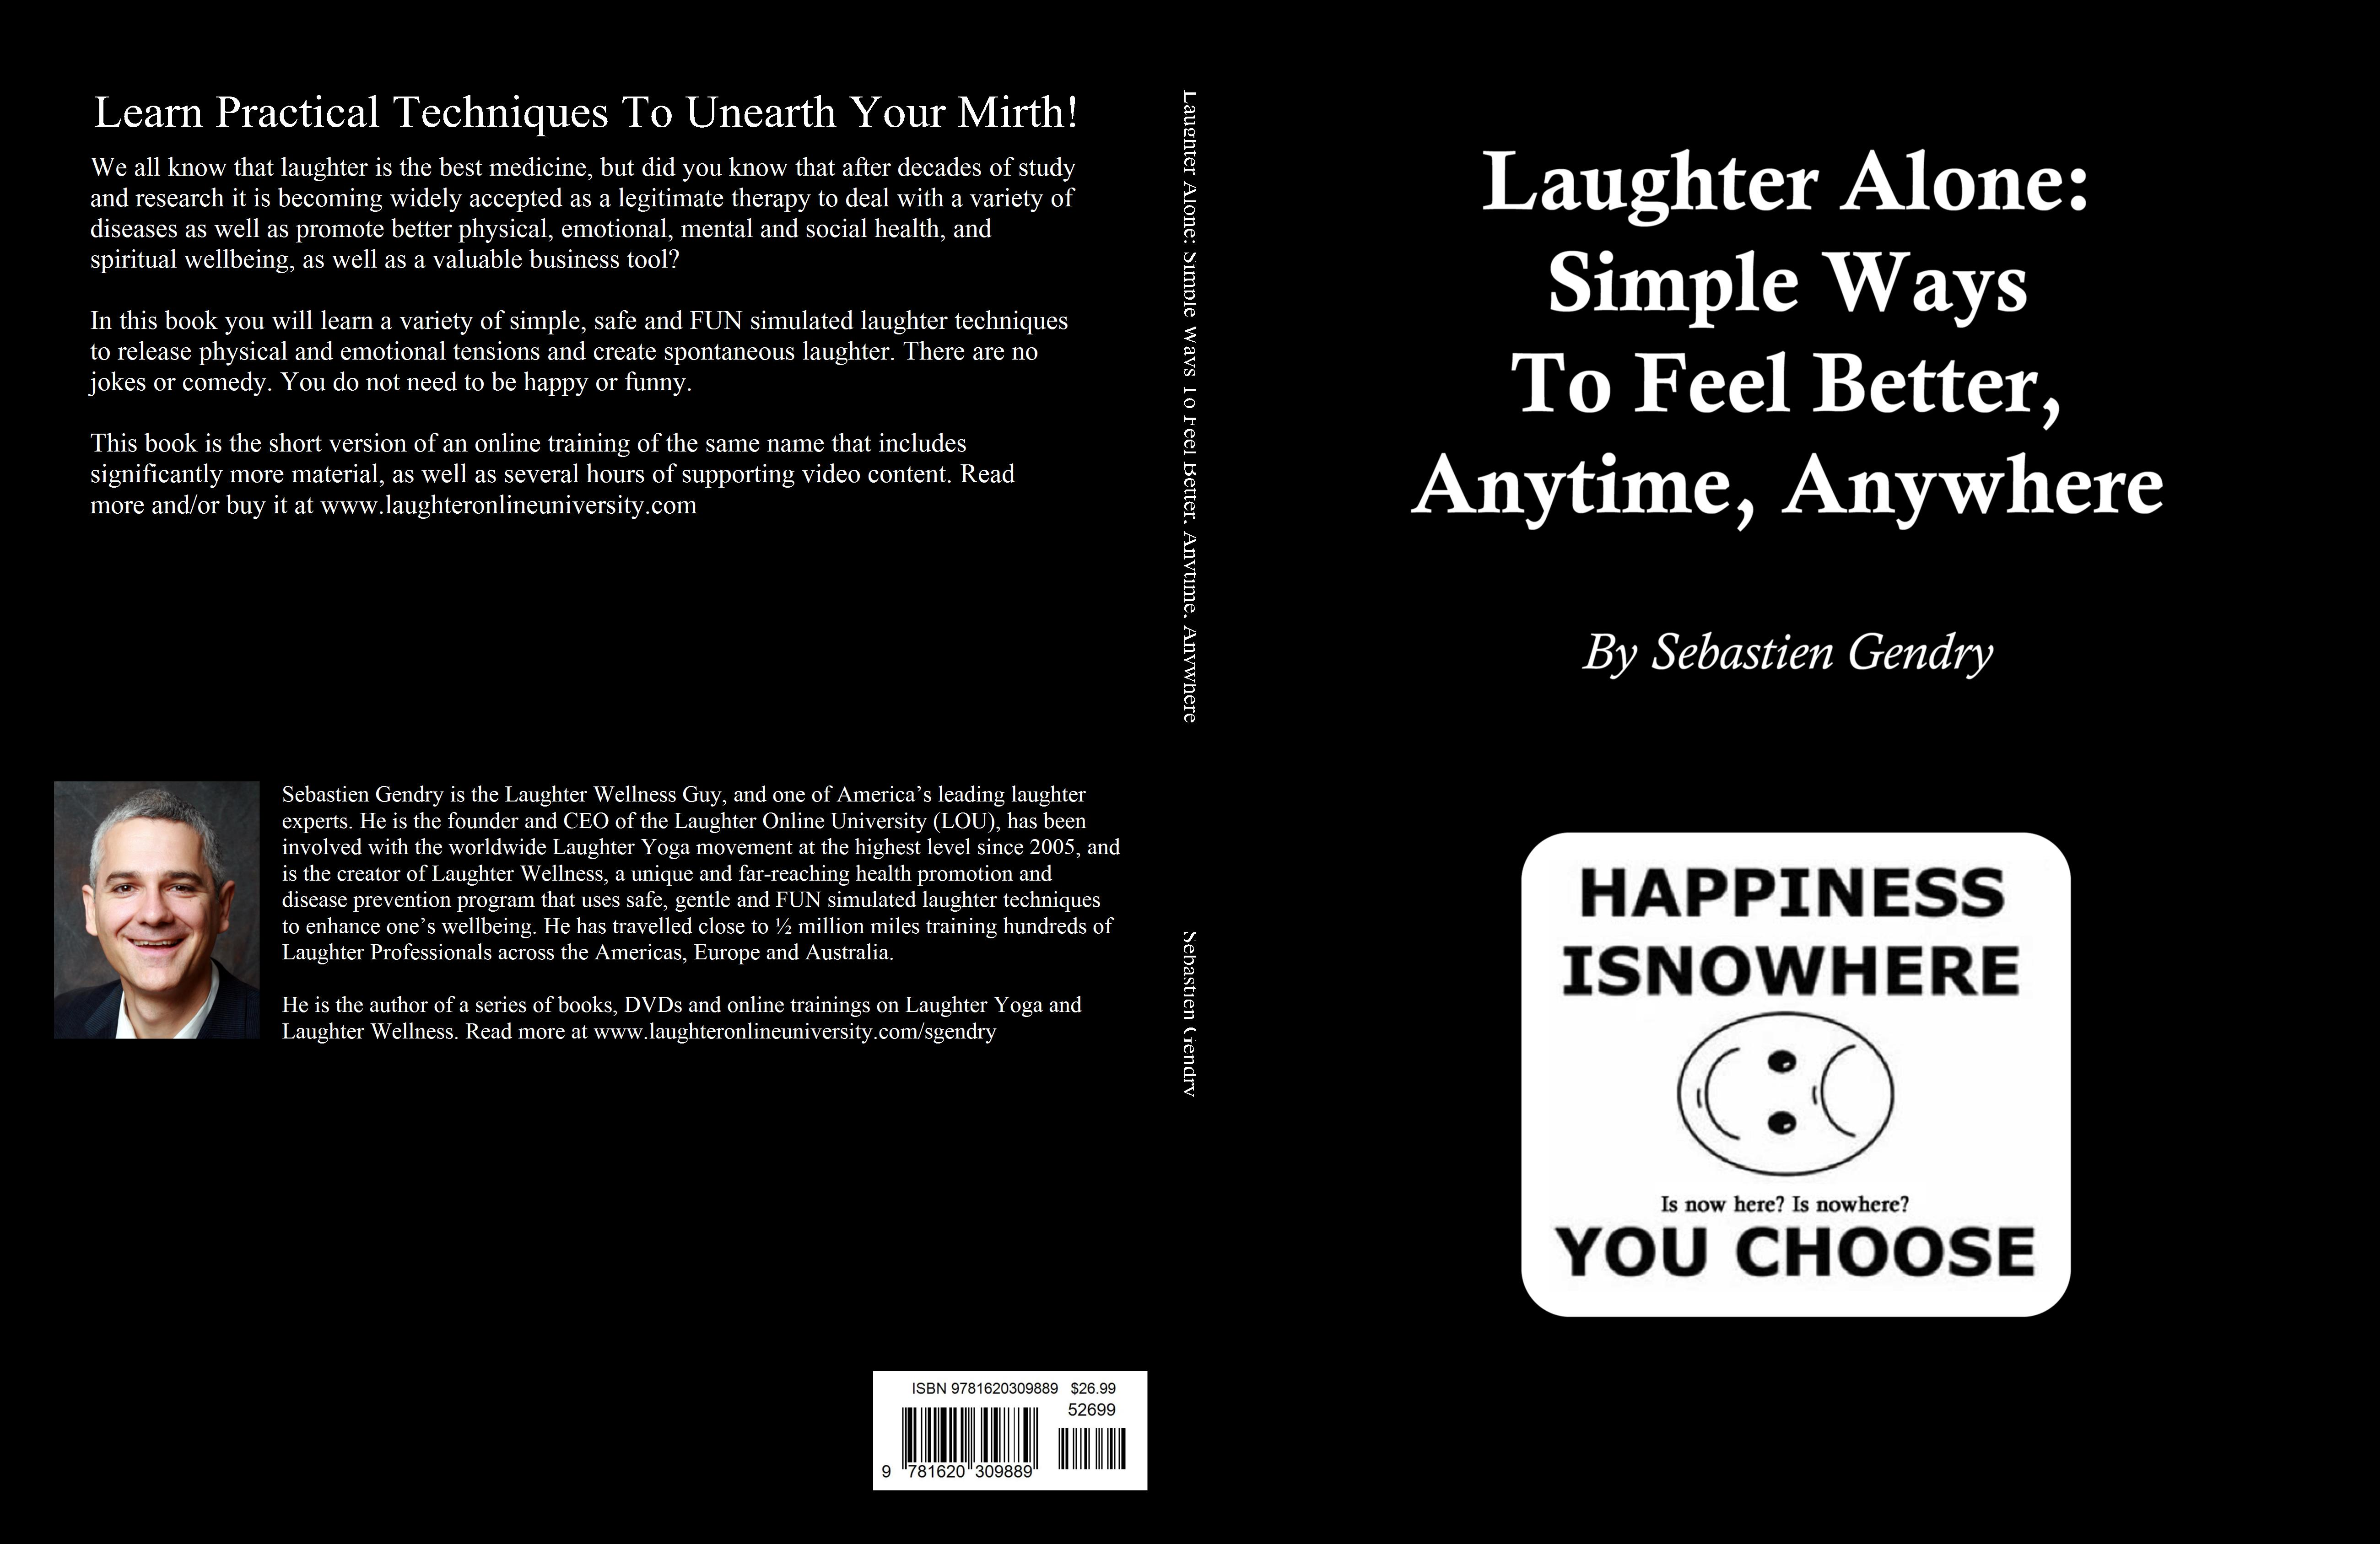 Laughter Alone: Simple Ways To Feel Better, Anytime, Anywhere cover image